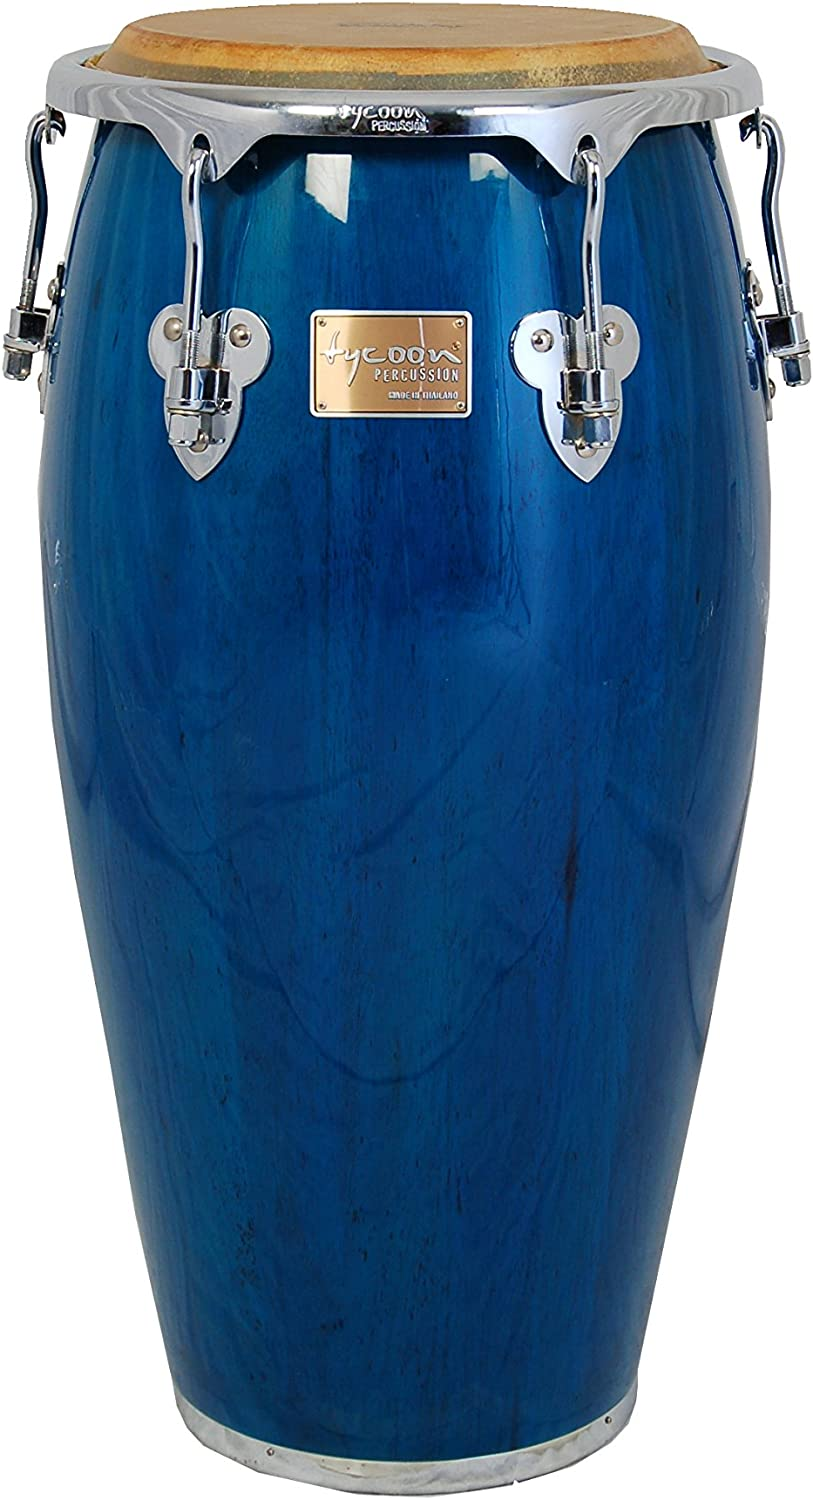 Tycoon Percussion 10 Inch Master Requinto Ranking TOP2 Blue Max 79% OFF Classic Wi Series